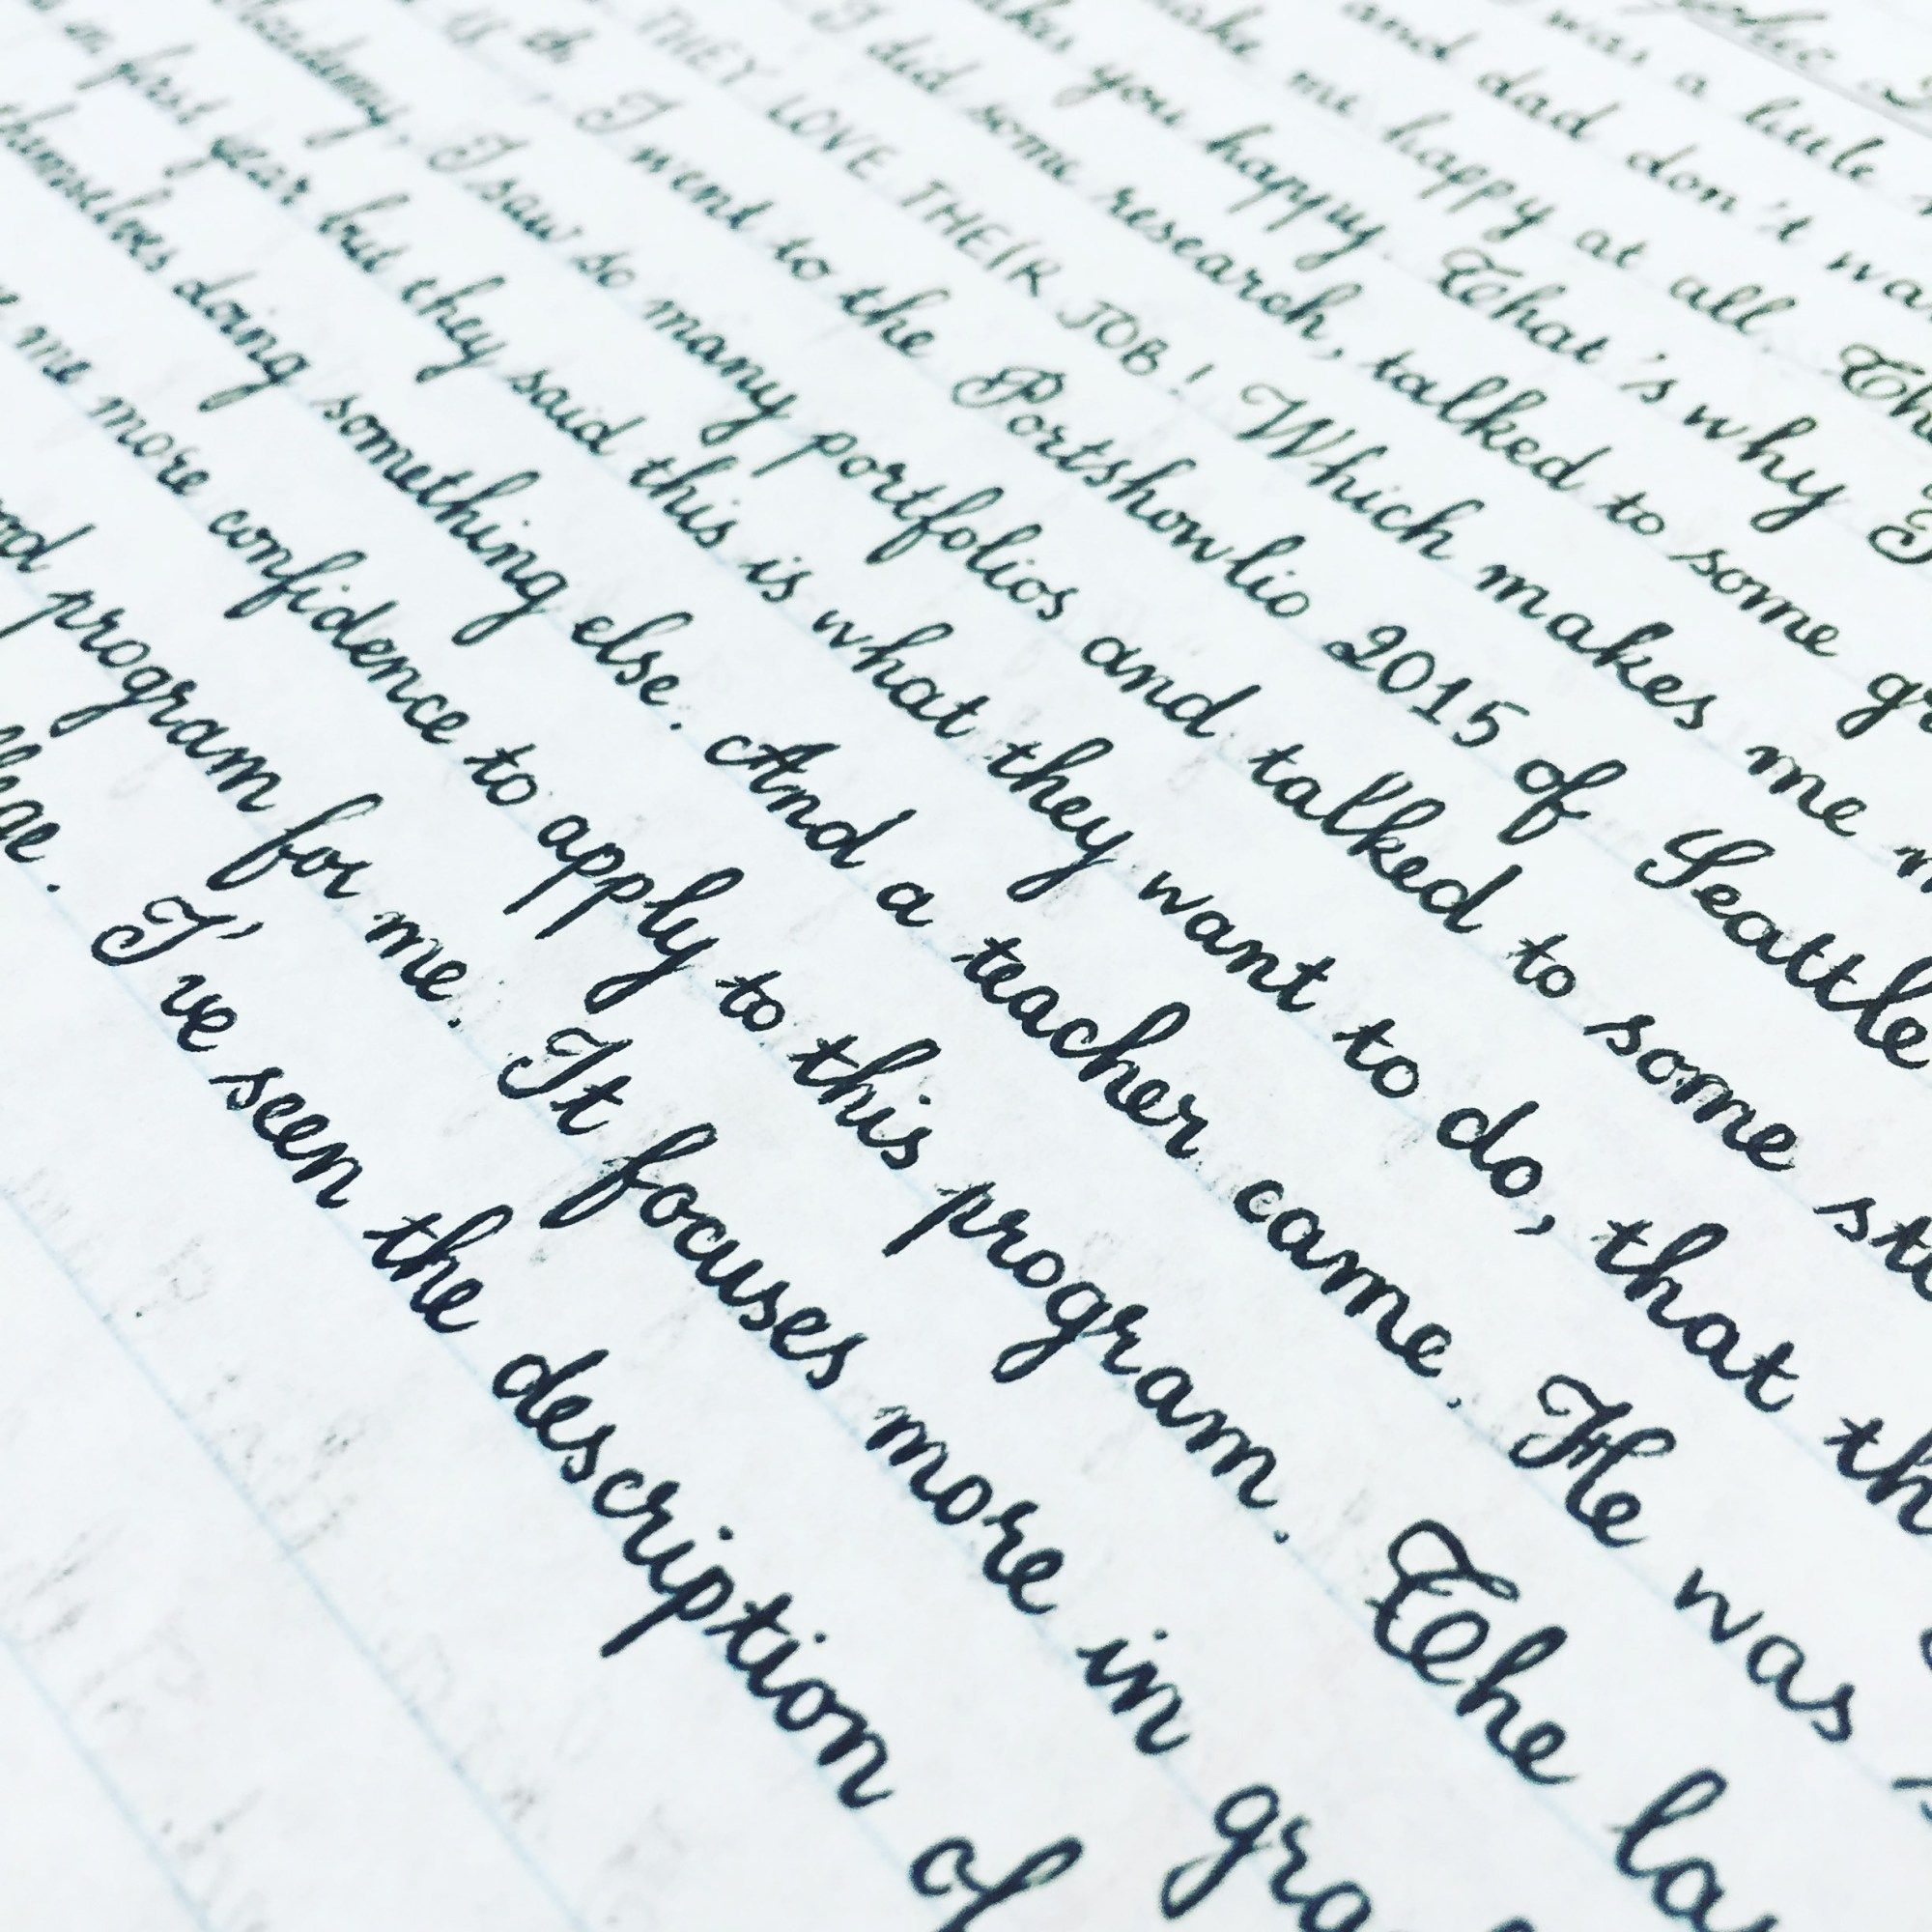 25 Amazing Examples Of Perfect Handwriting With Images